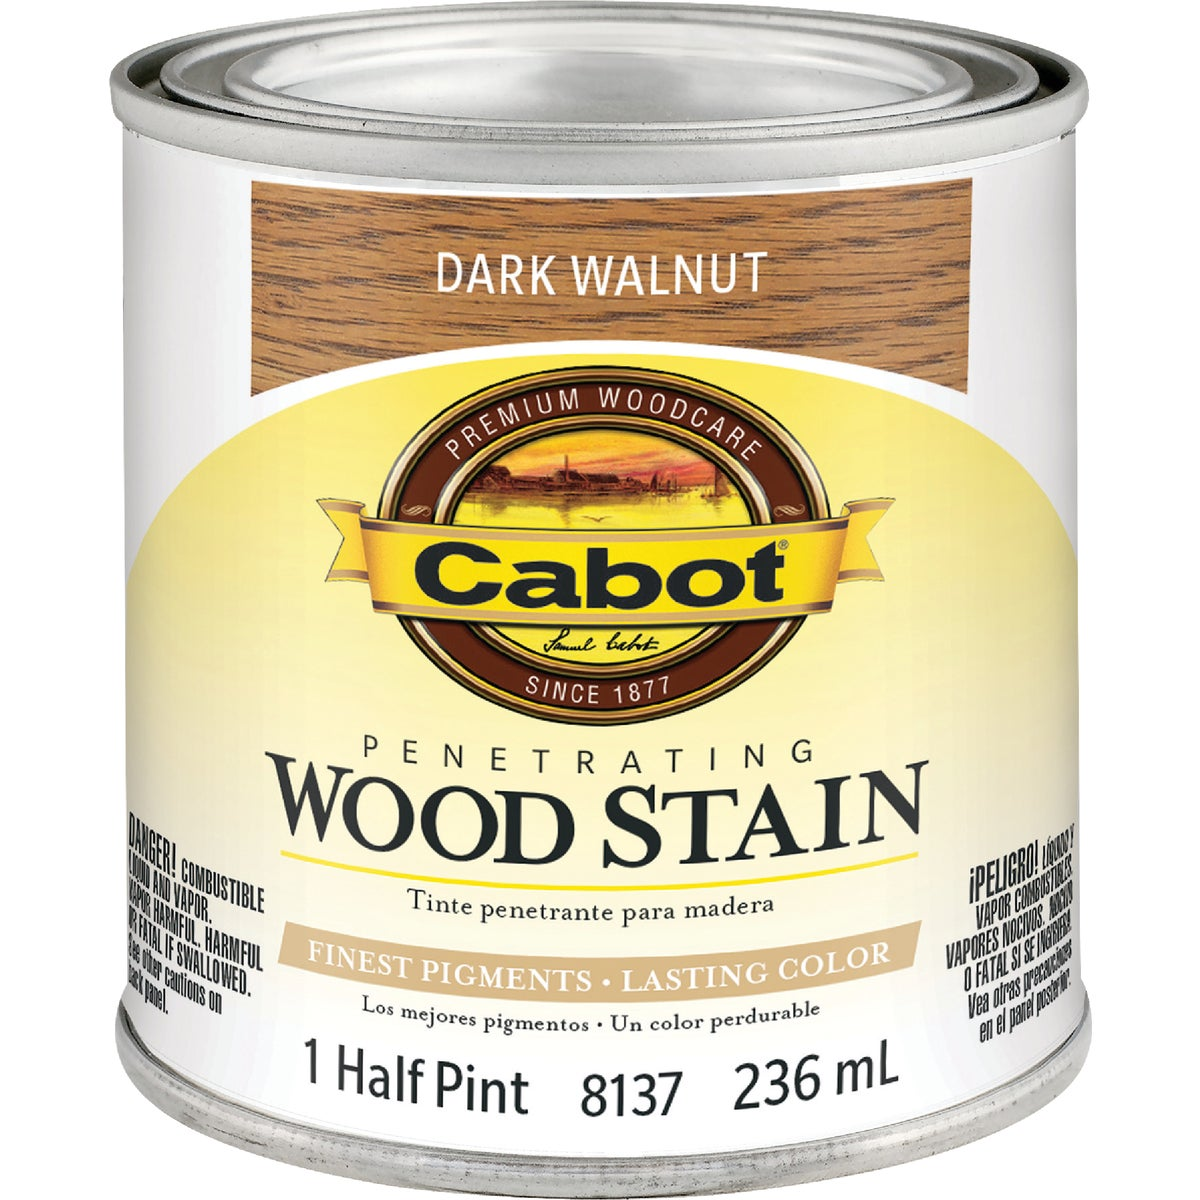 INT DRK WALNT WOOD STAIN - 144.0008137.003 by Valspar Corp